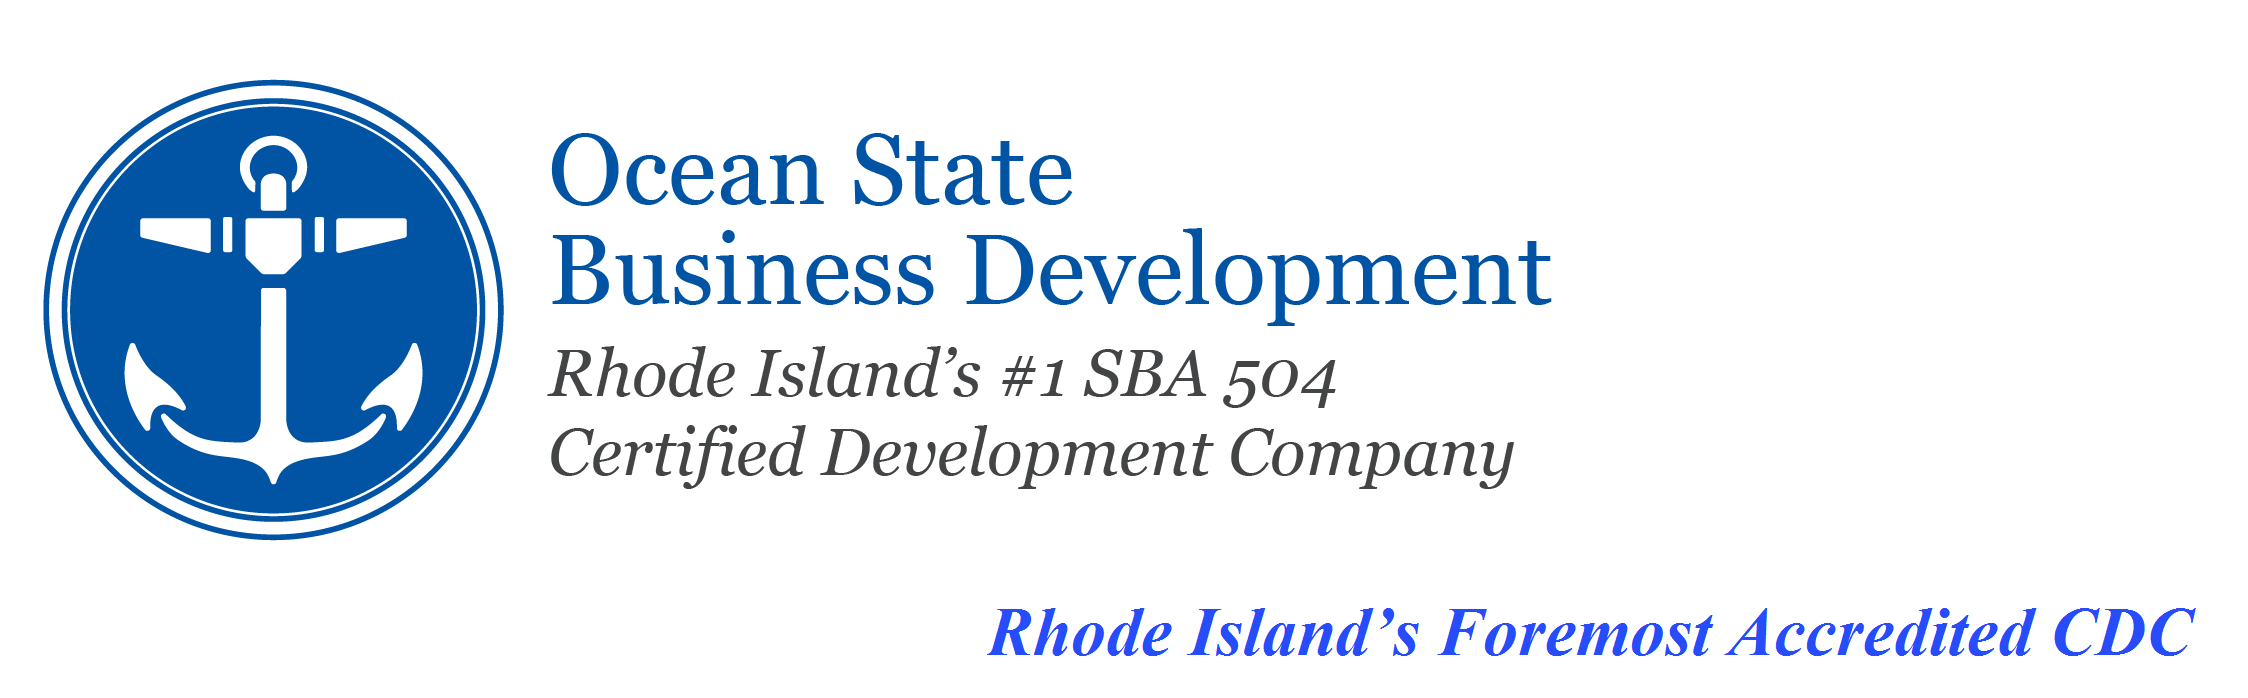 Ocean State Business Development Authority